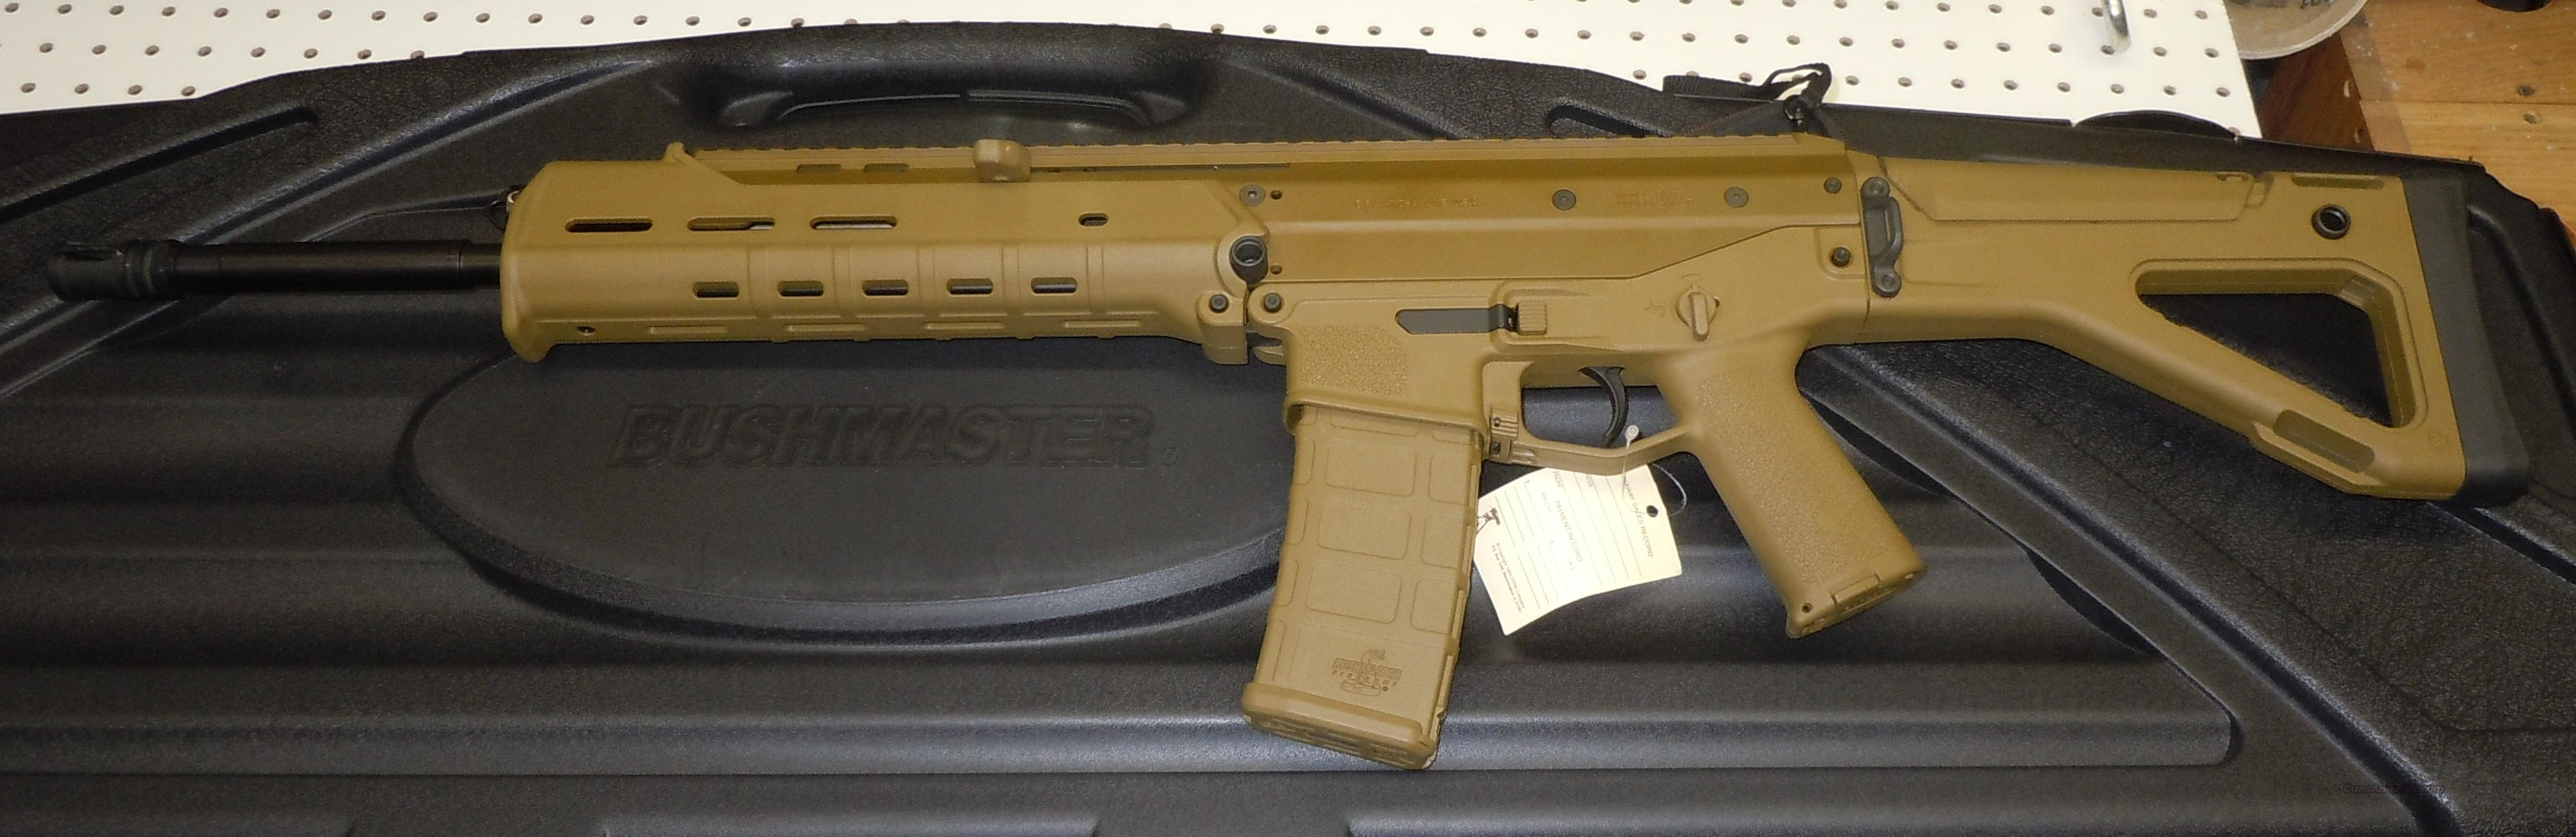 BUSHMASTER ACR 5.56 NATO (223 REM) RIFLE *COYOTE BROWN, NO LONGER IN PRODUCTION*  Guns > Rifles > Bushmaster Rifles > Complete Rifles